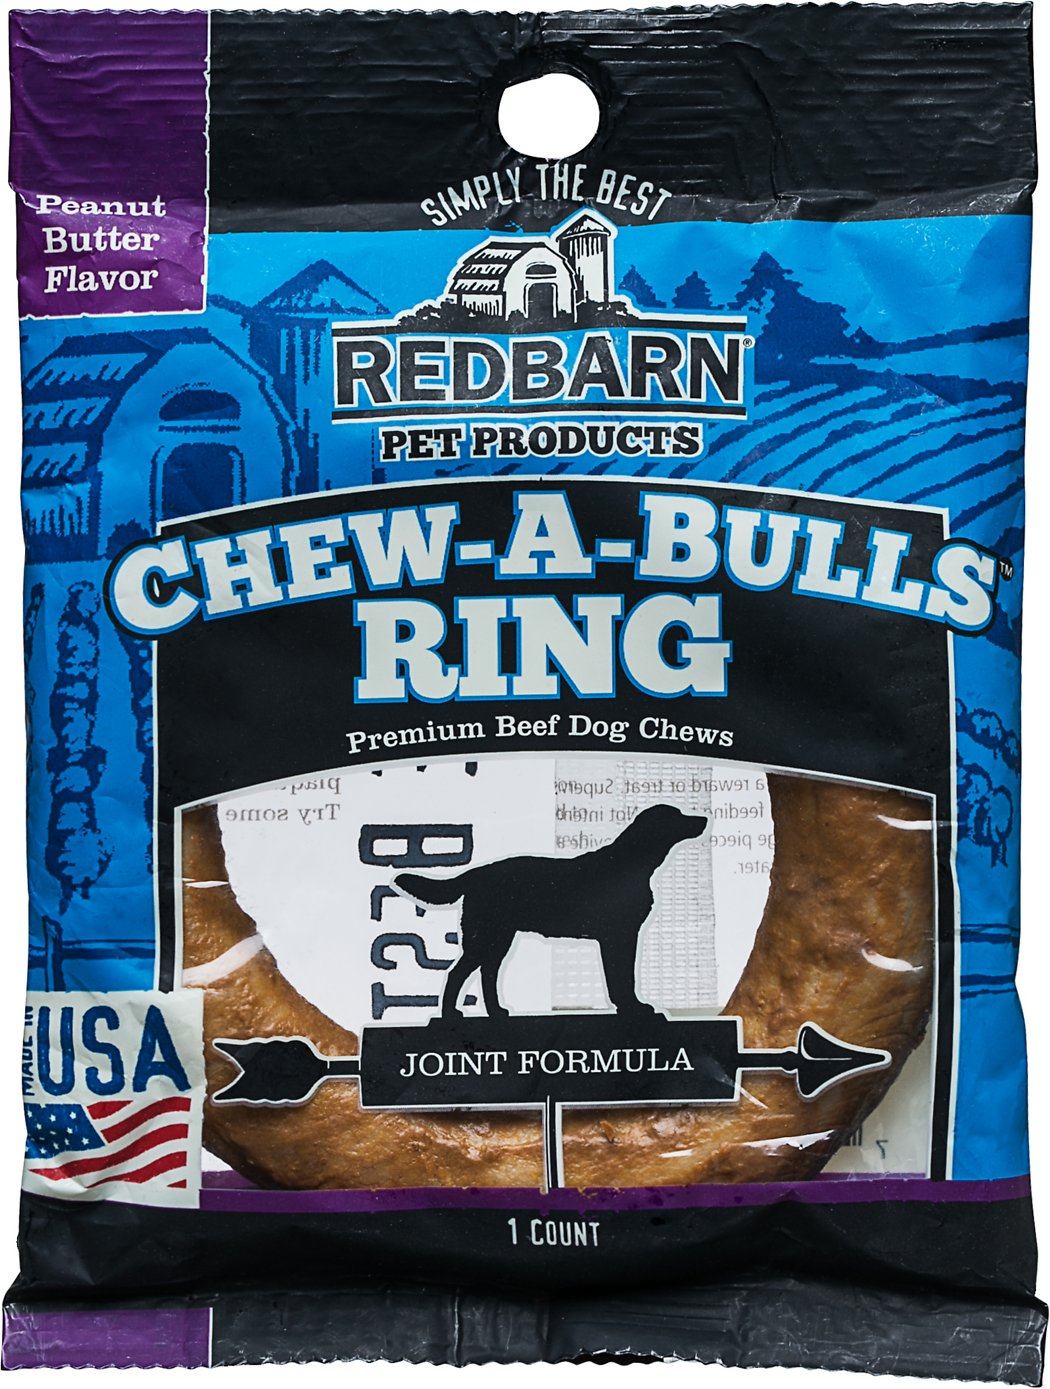 Redbarn Peanut Butter Flavor Joint Formula Chew-A-Bulls Ring Dog Treat, 1 count